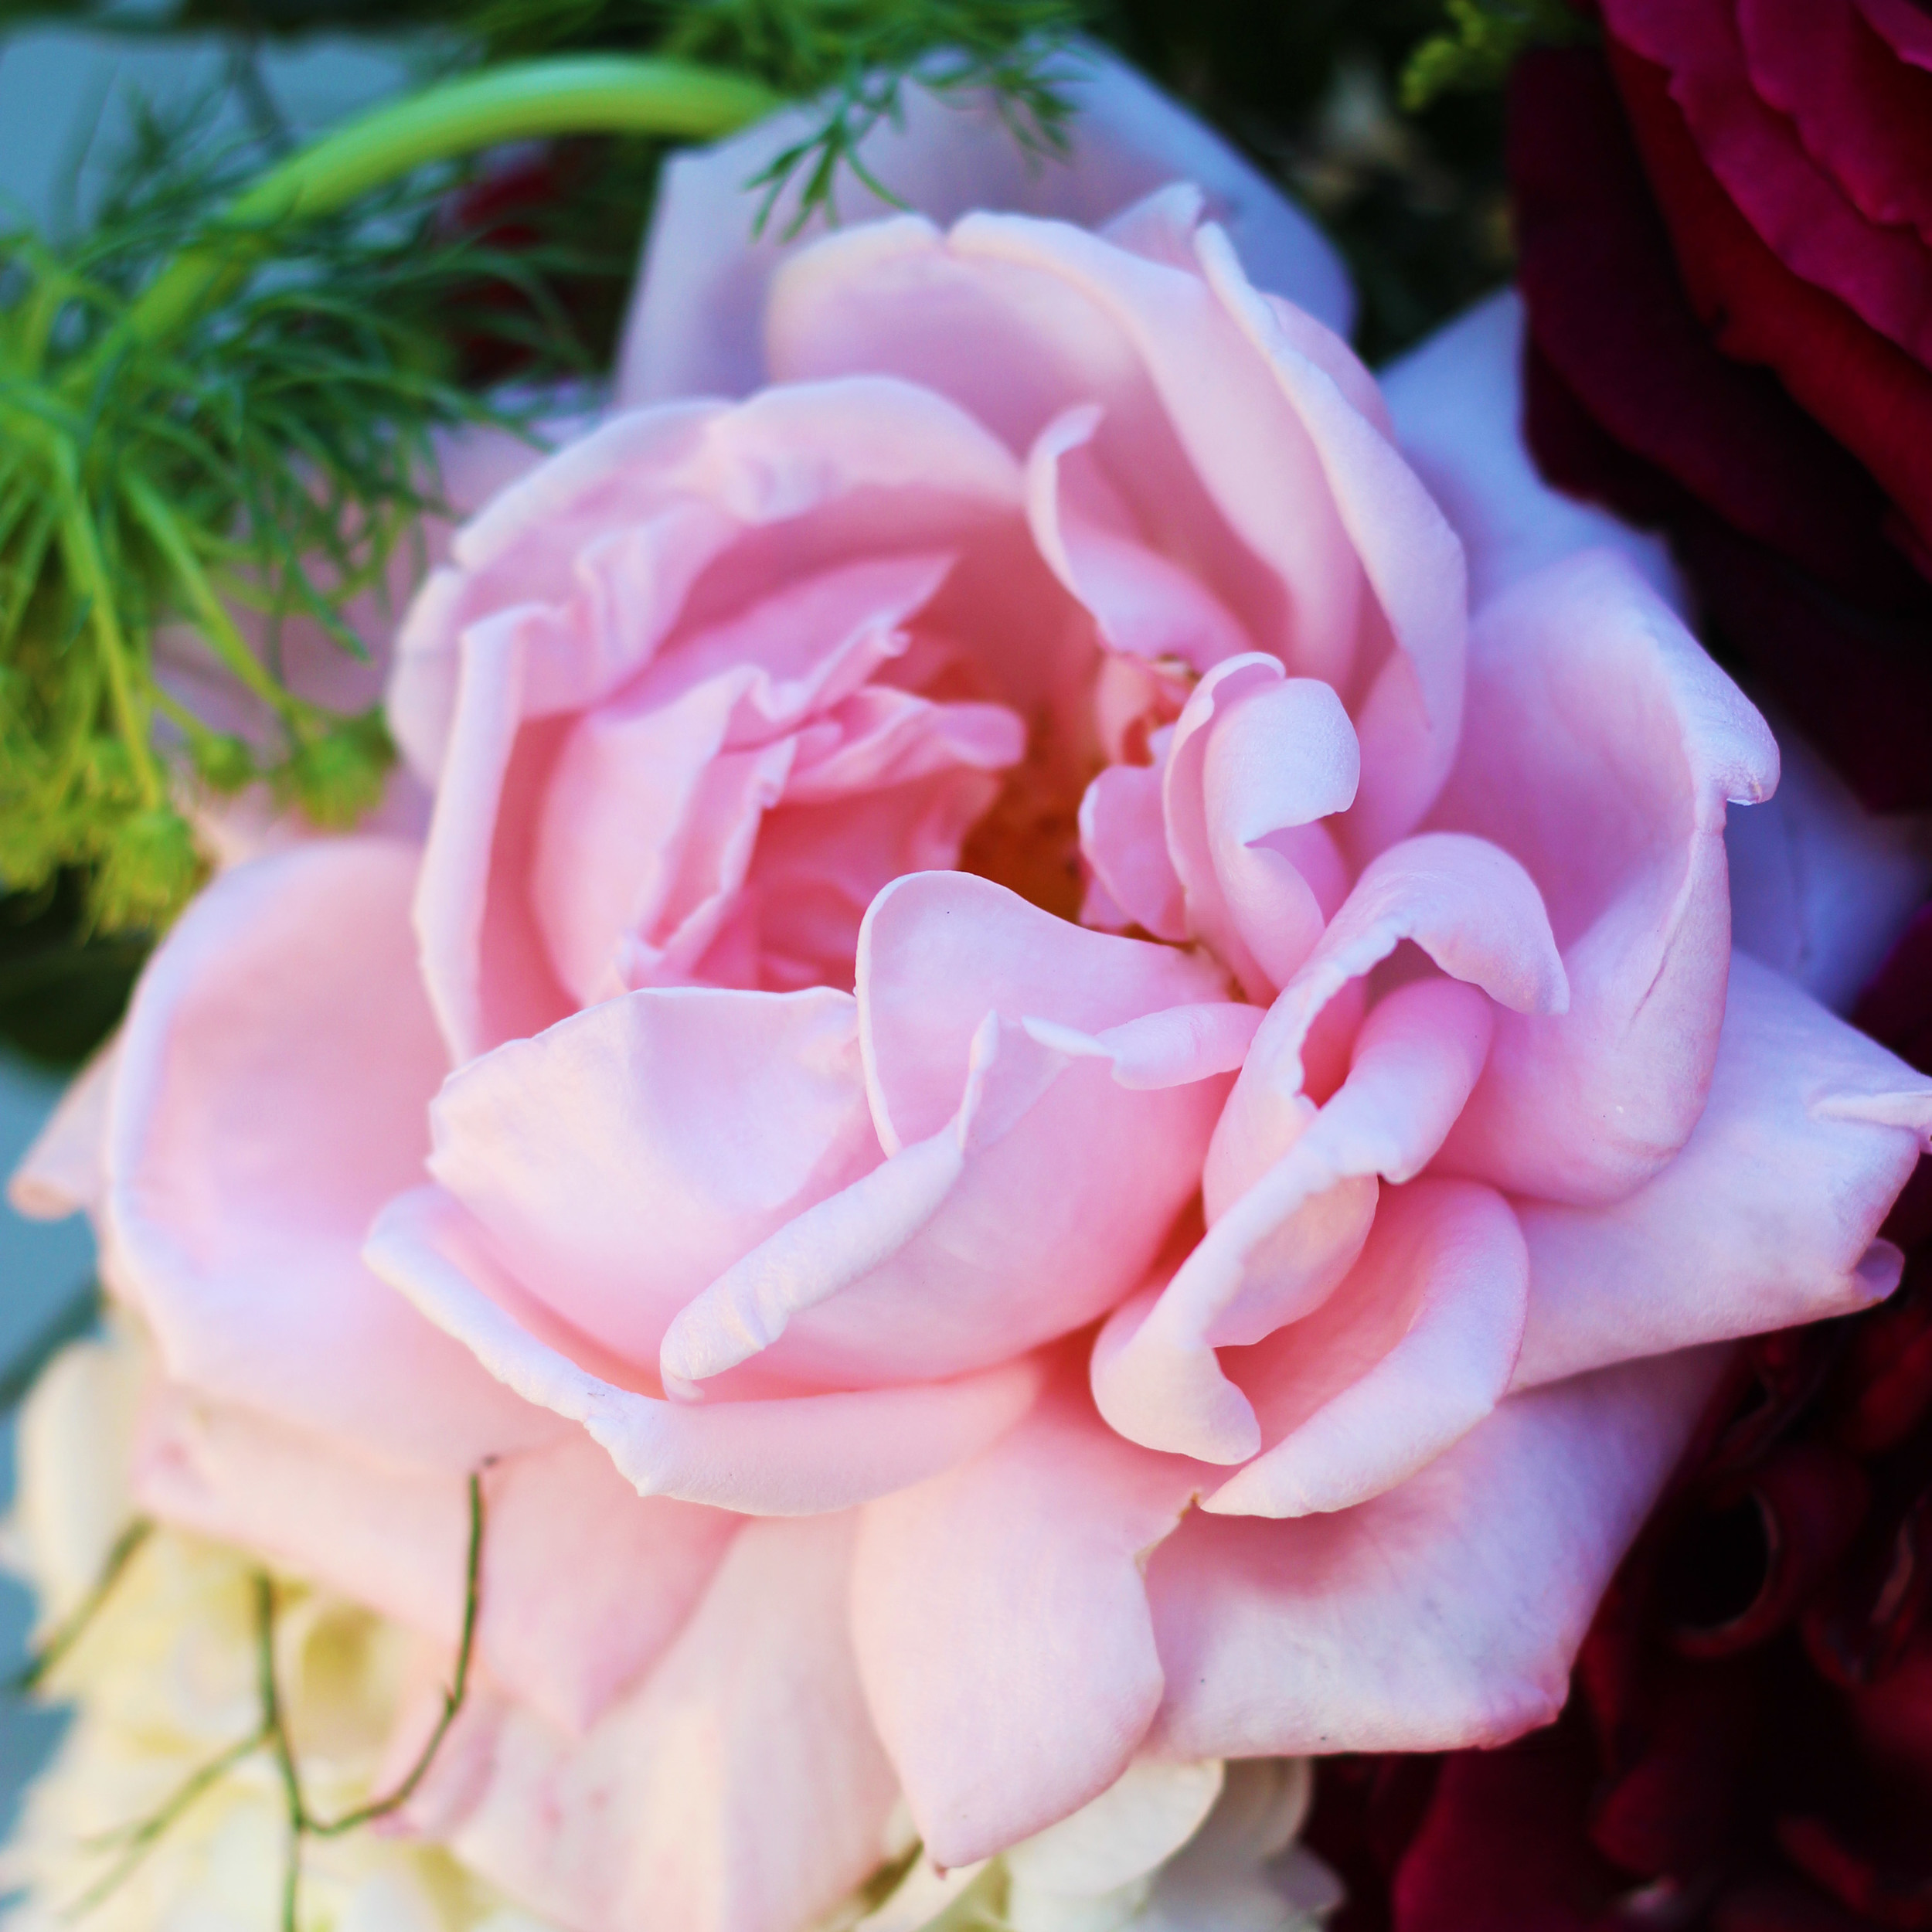 The New Zealand Rose has a different fragrance than the Mr. Lincoln, but equally as captivating.